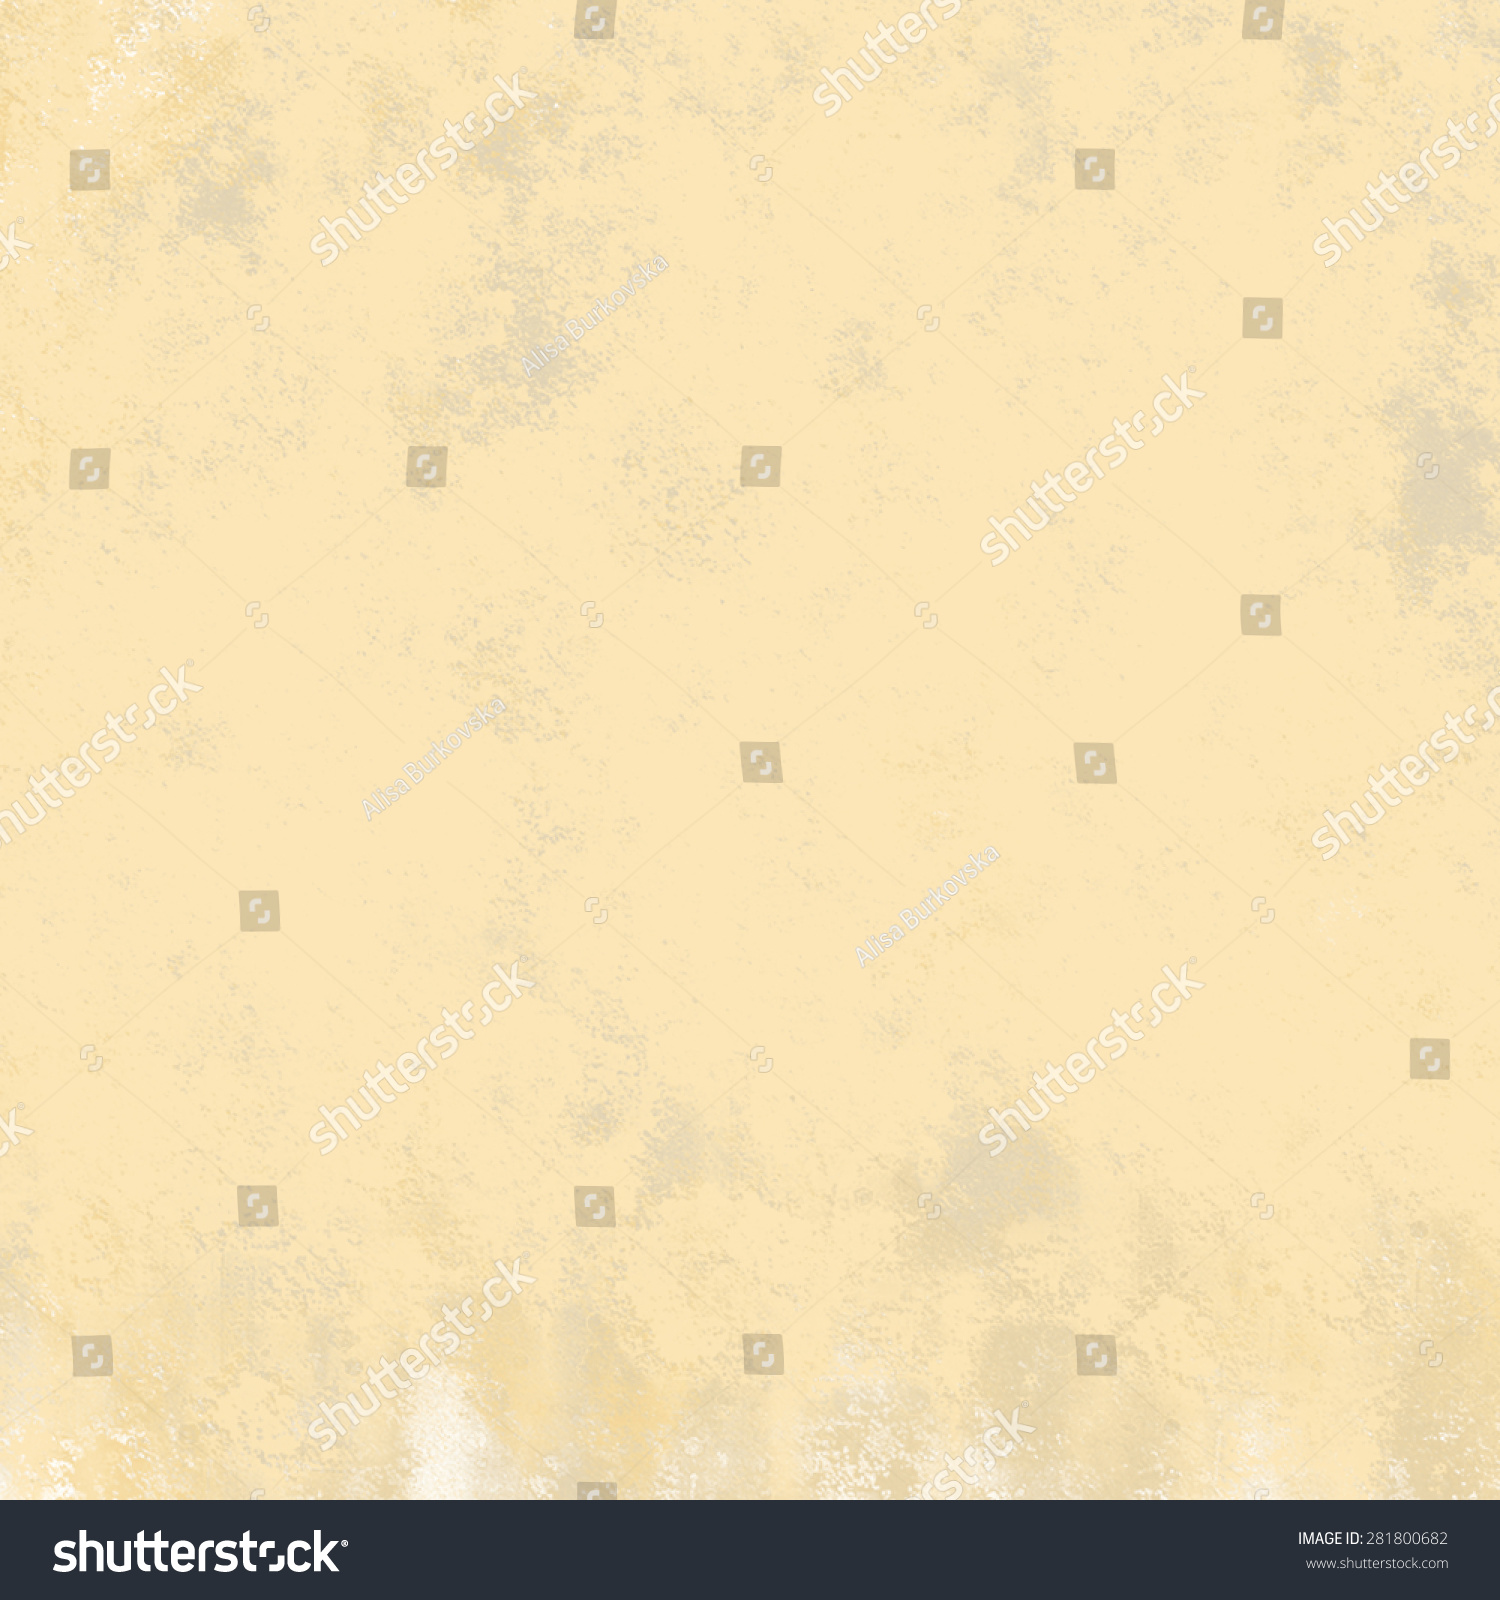 Abstract Brown Background Paper Parchment Stock Illustration 281800682